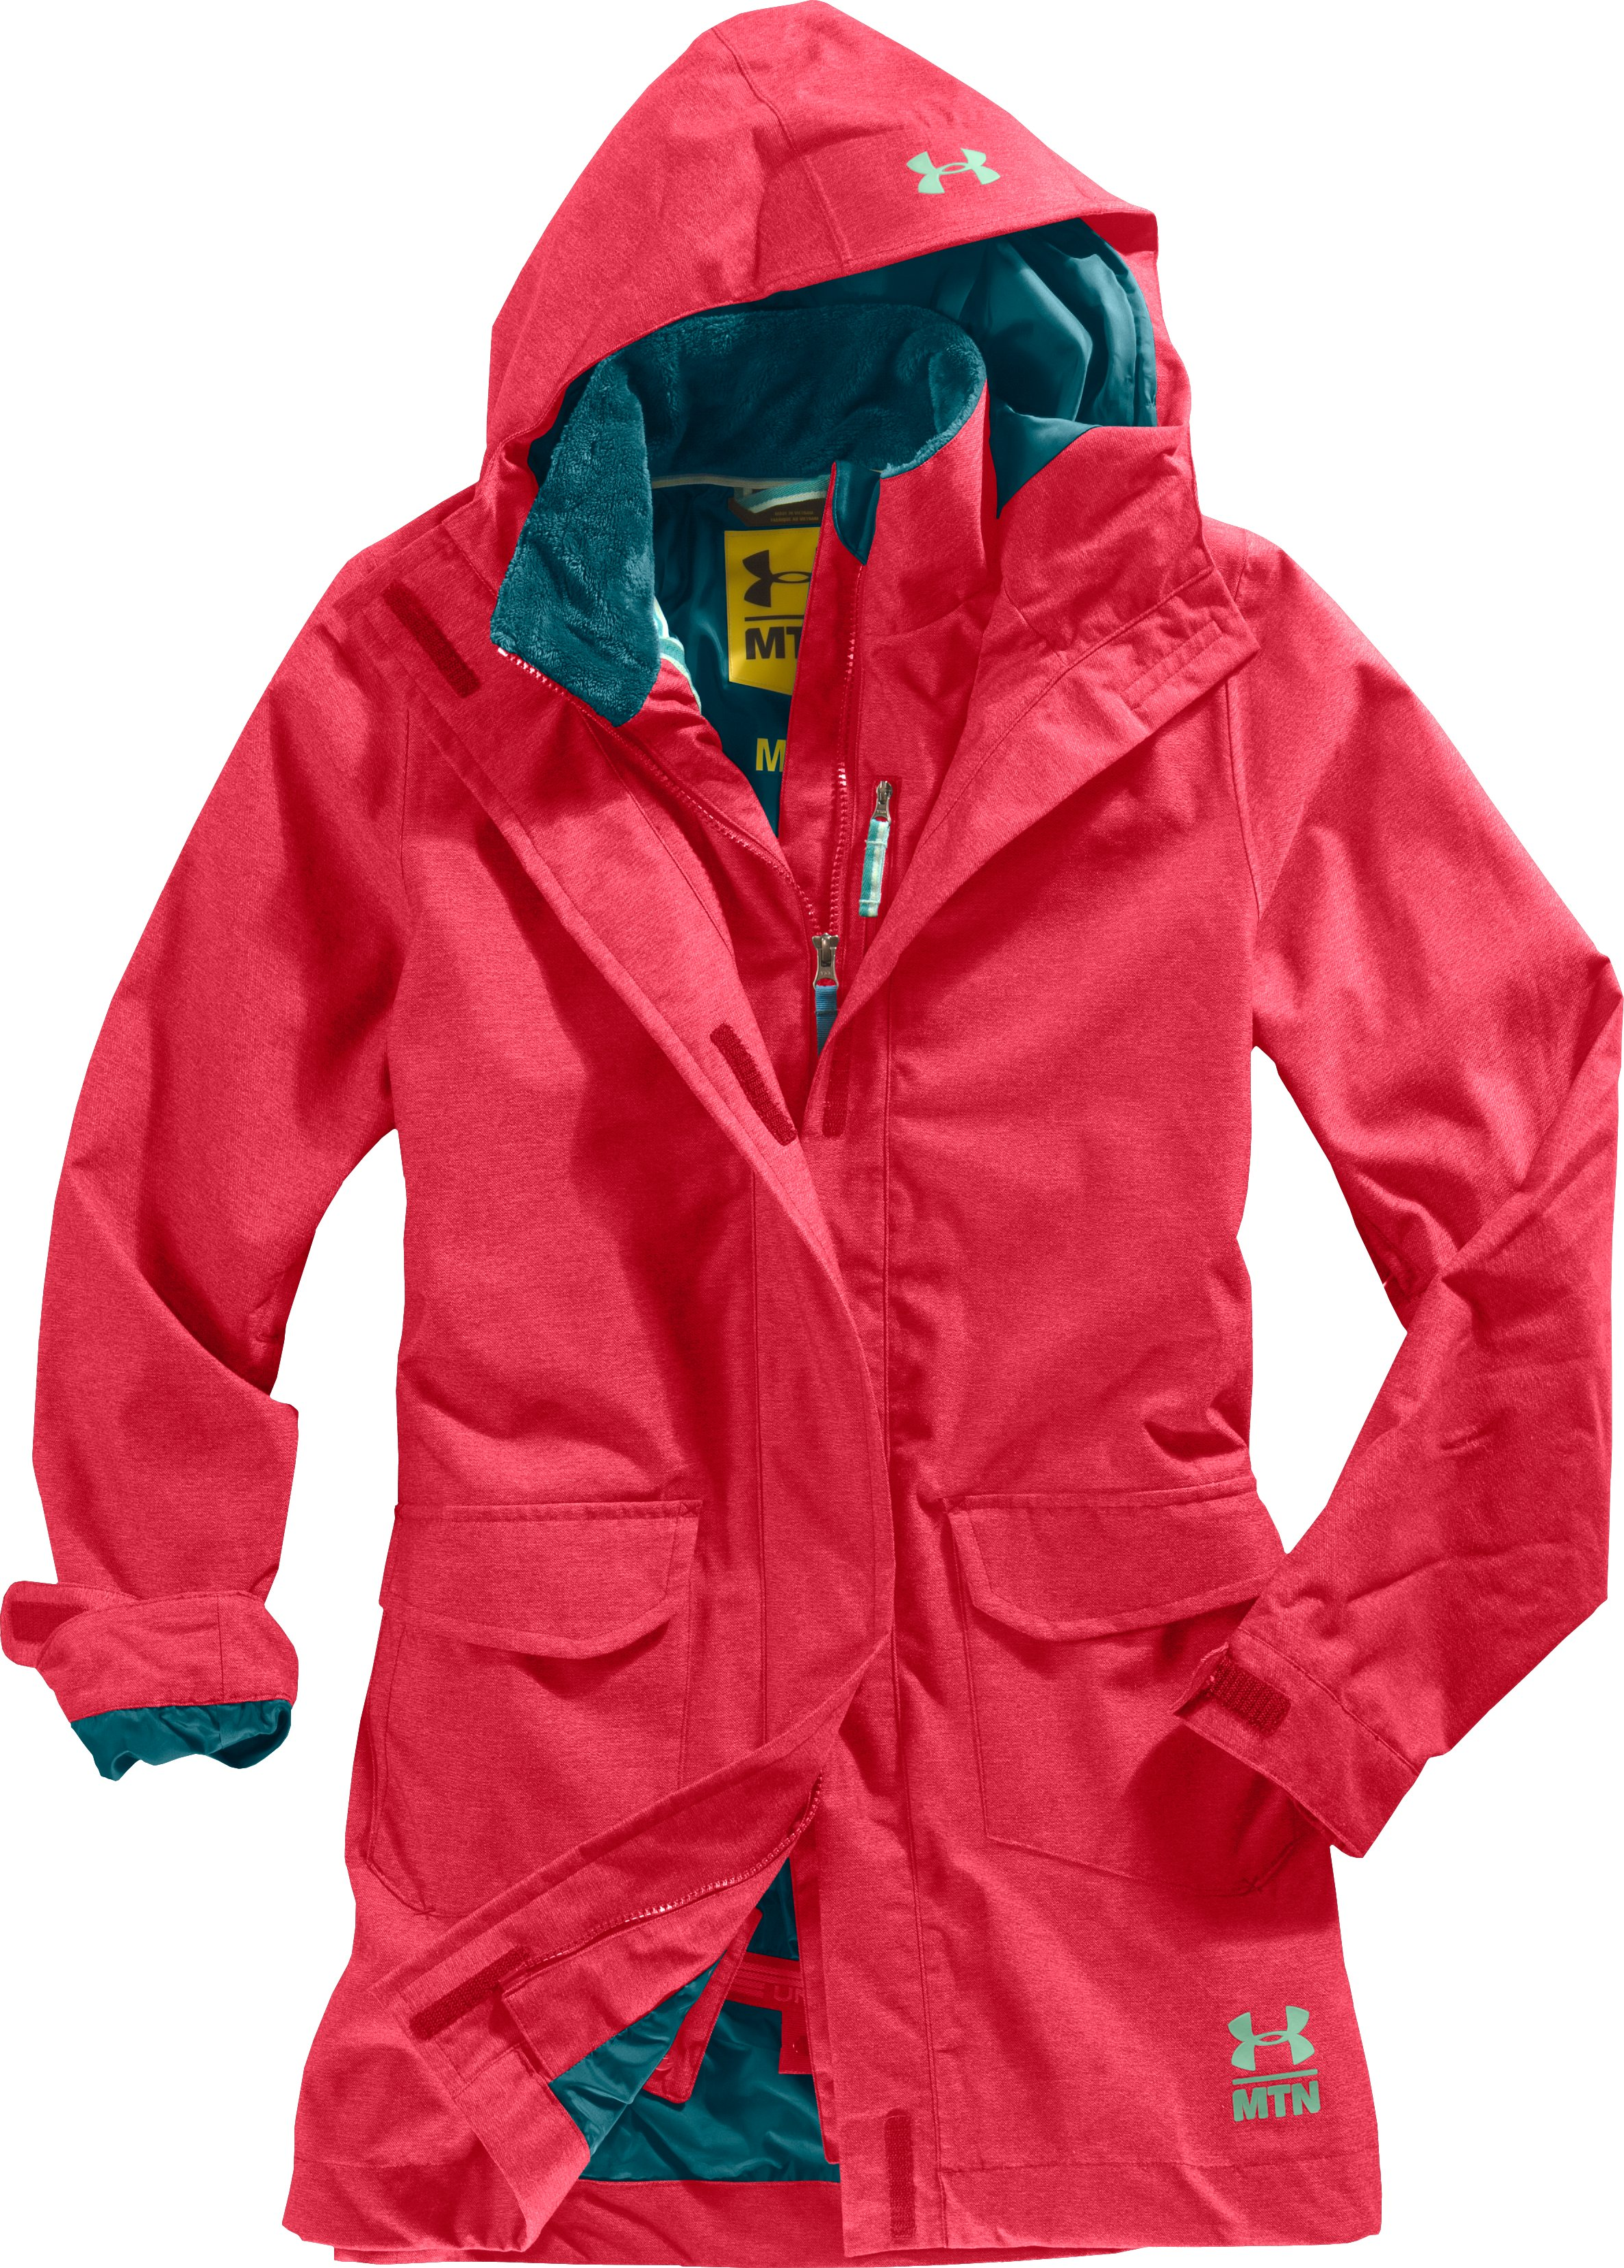 Women's After Forever Shell Jacket, Daiquiri, Laydown